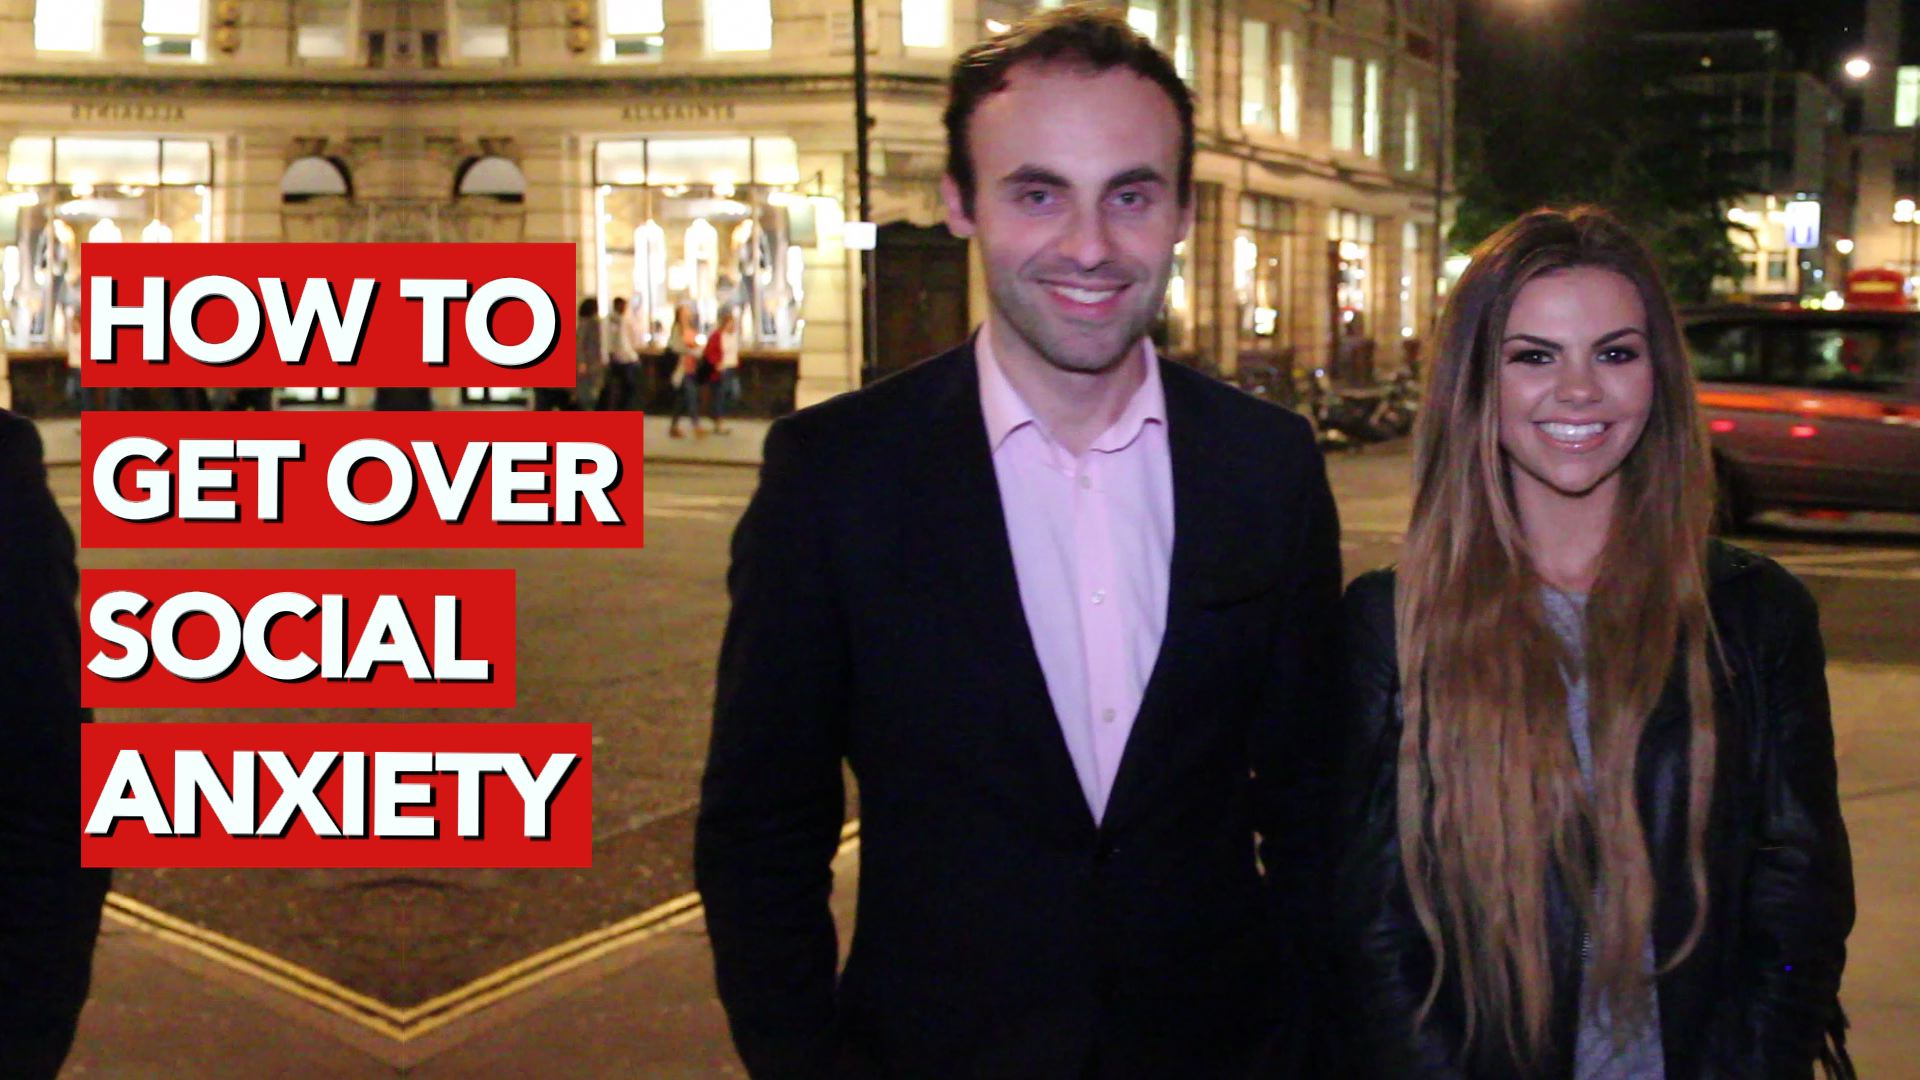 How to get over social anxiety